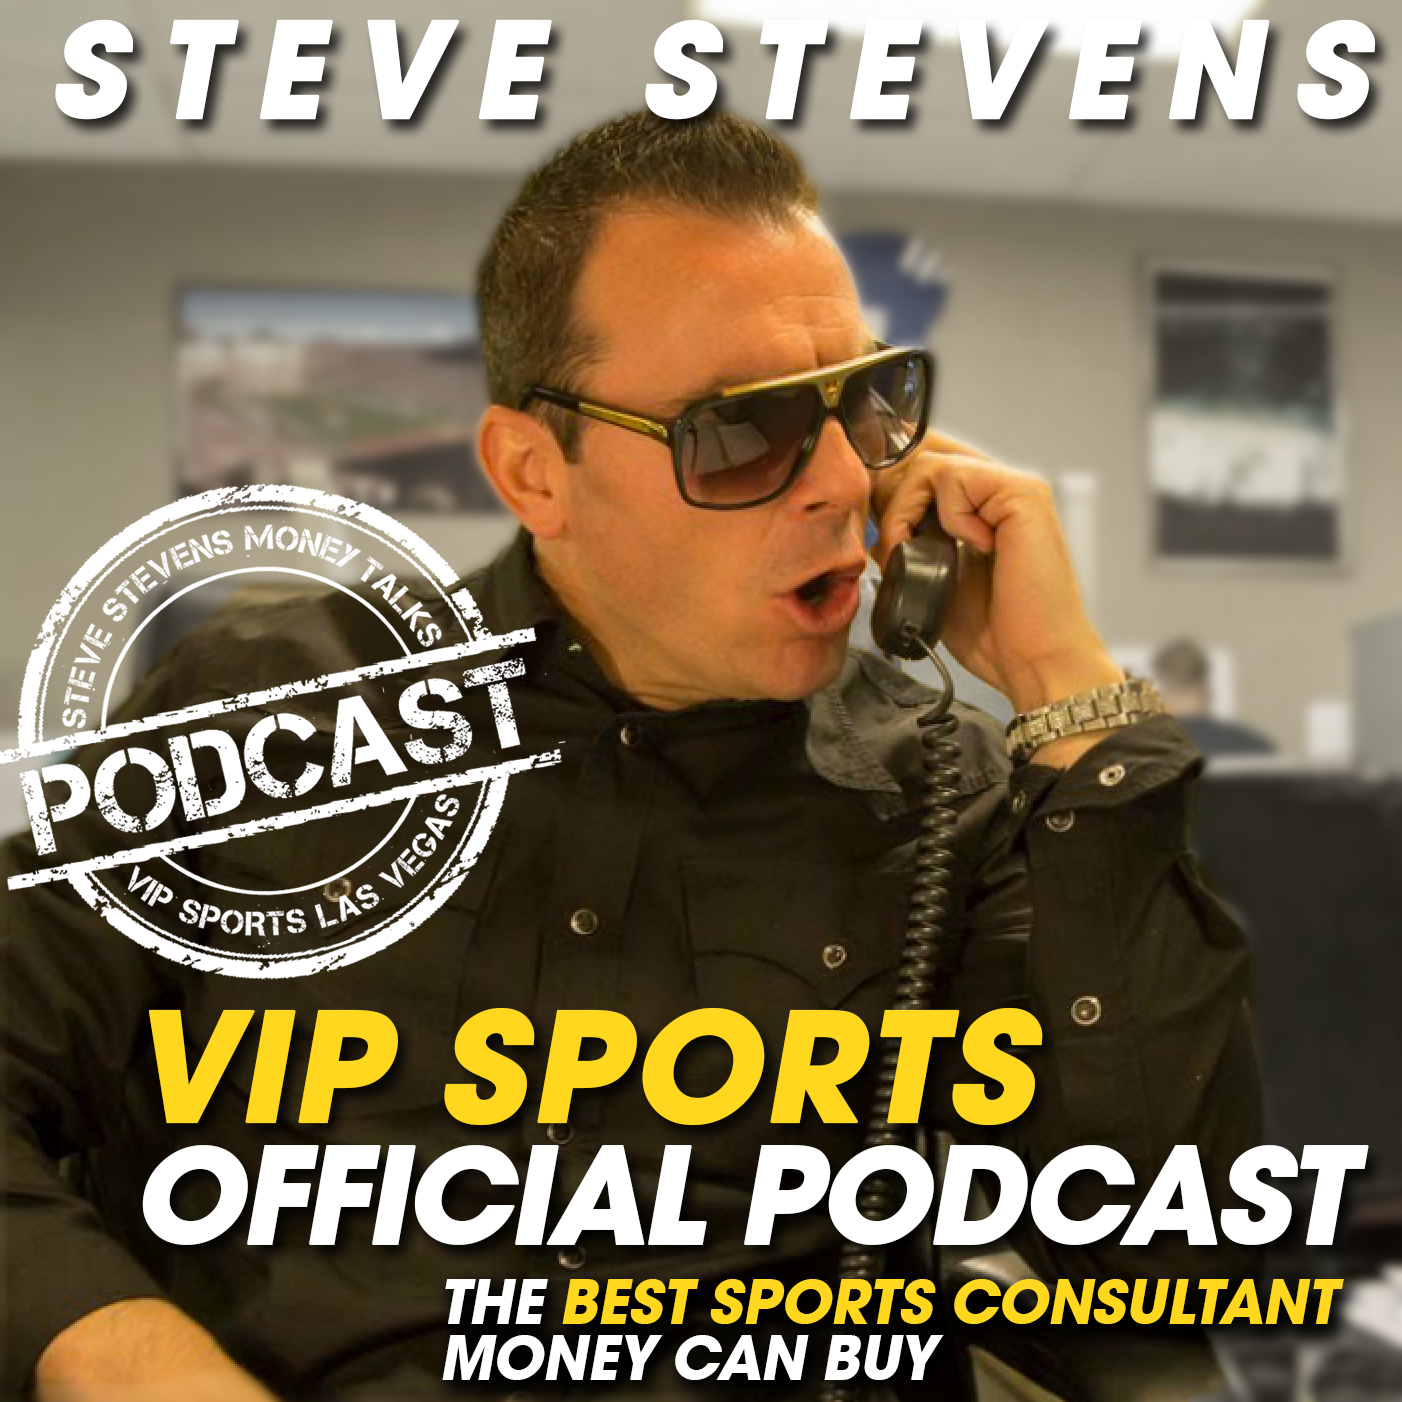 VIP SPORTS LAS VEGAS - Official Podcast